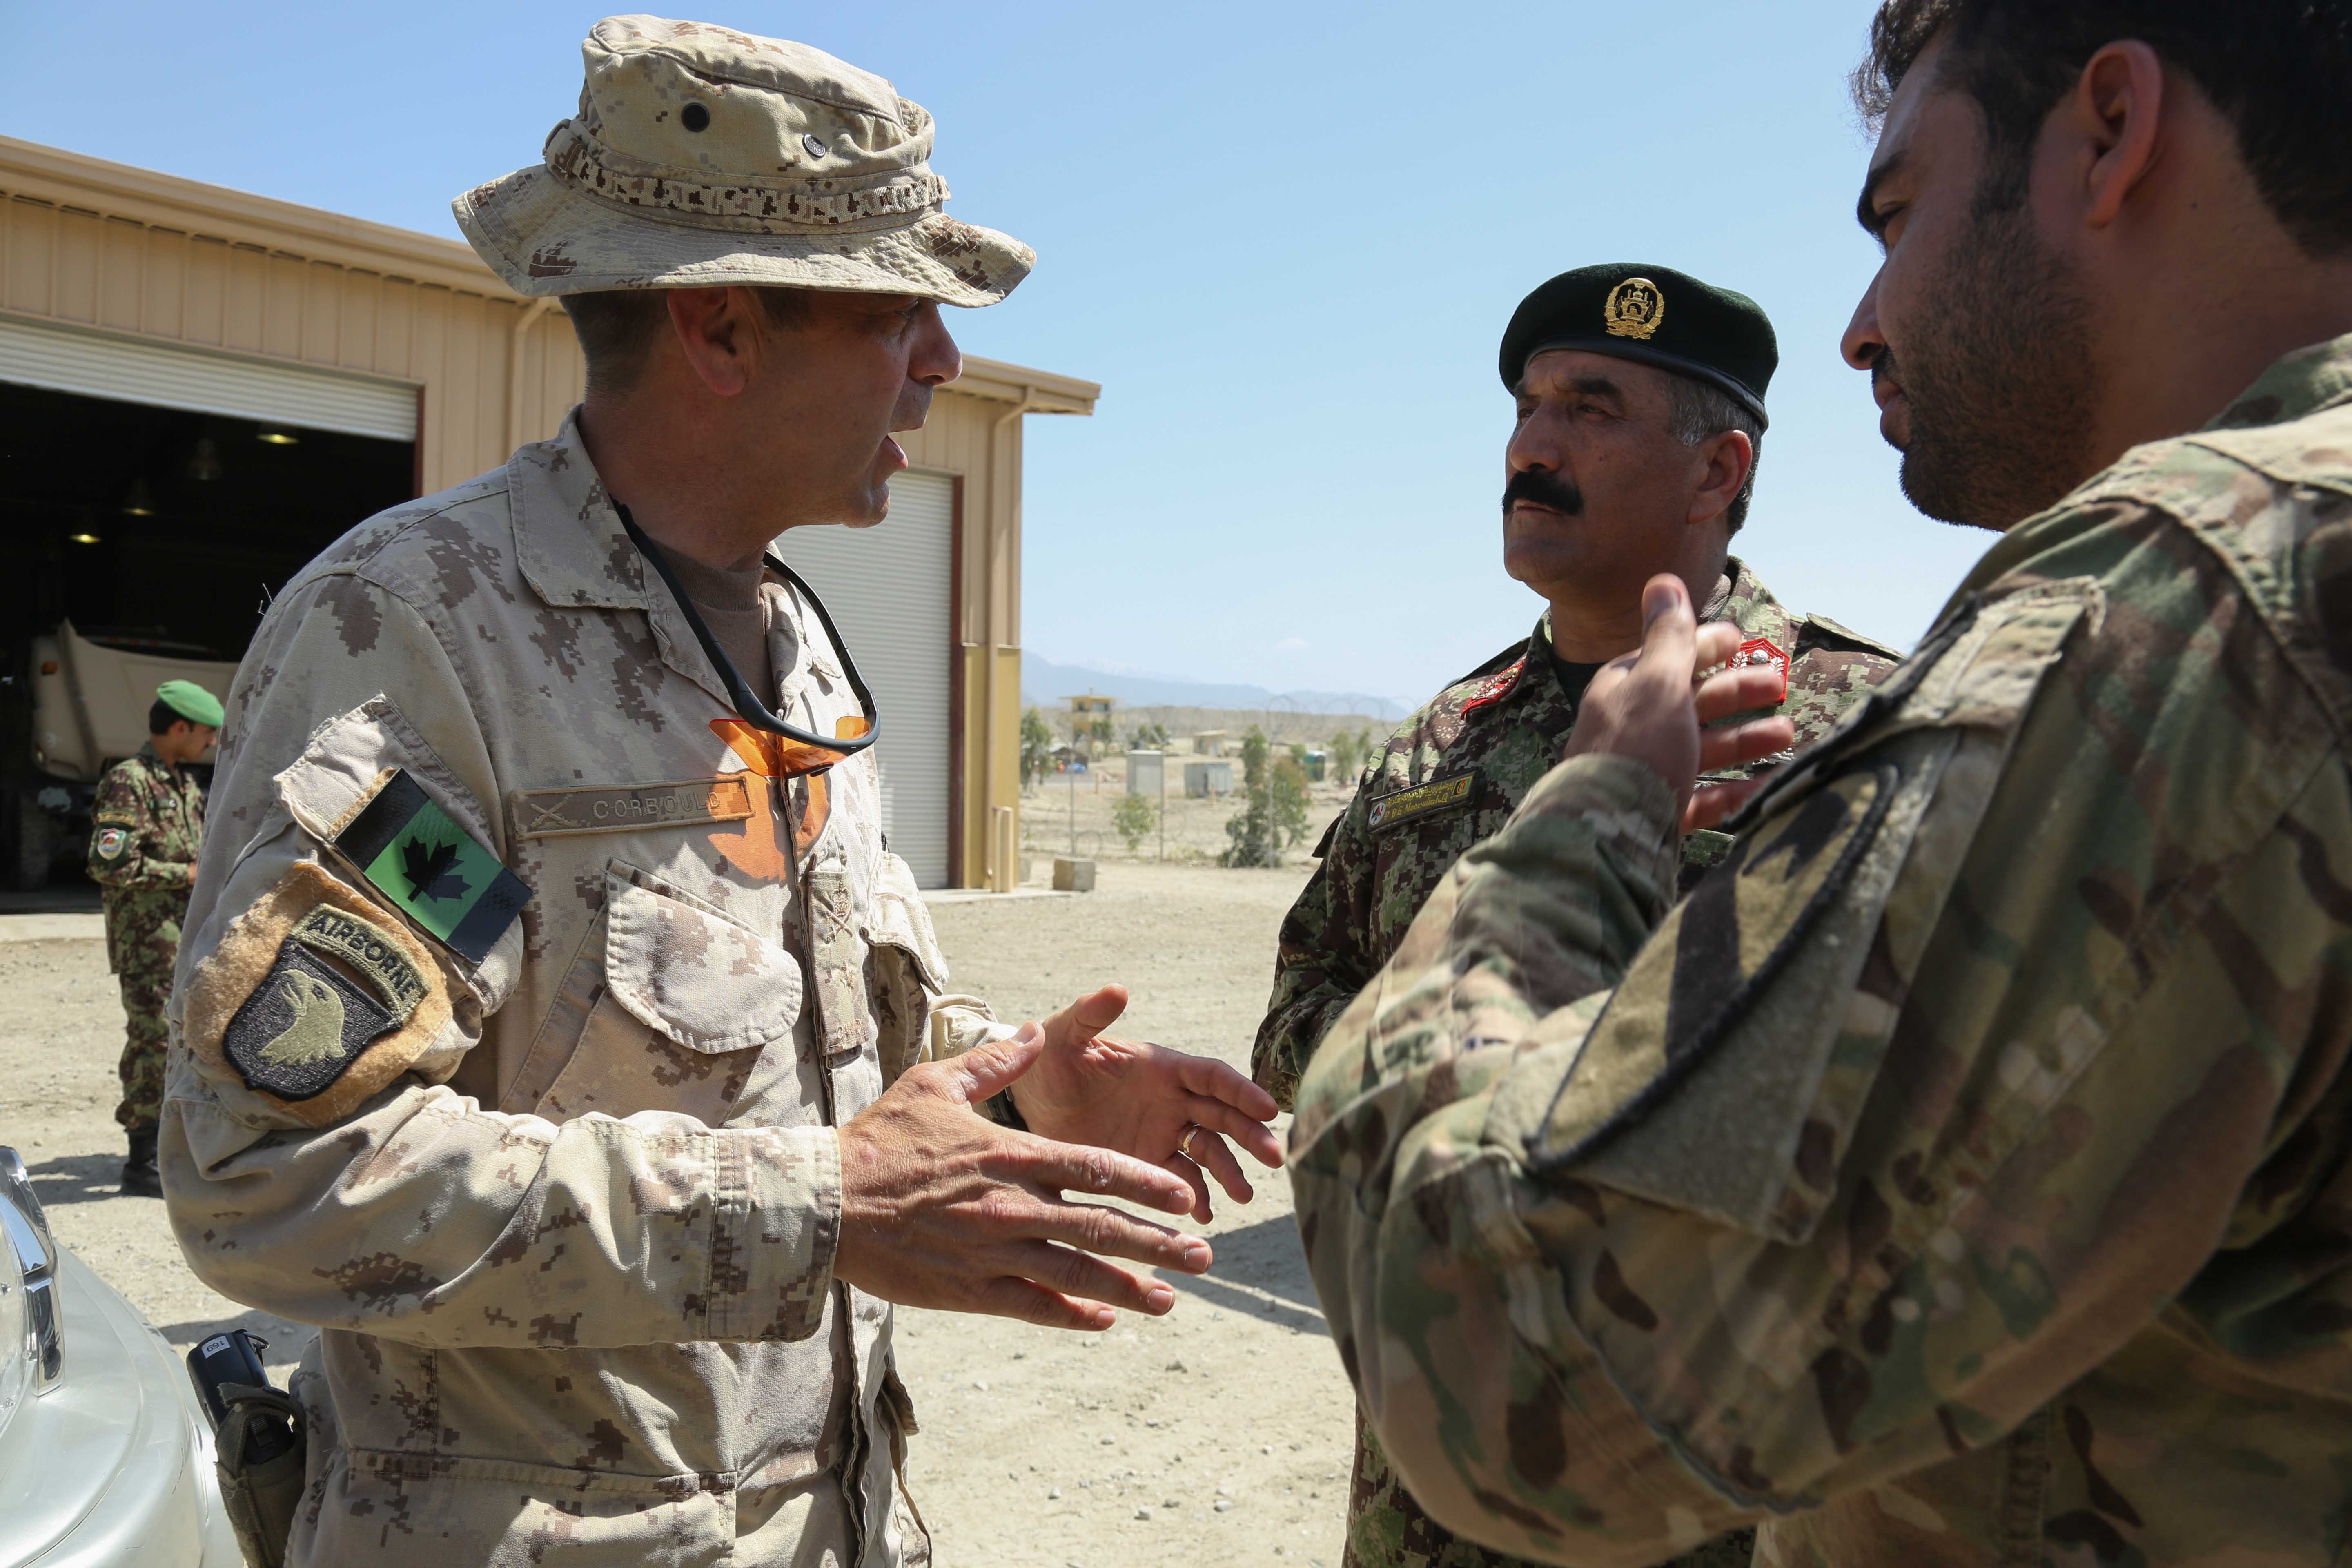 https://upload.wikimedia.org/wikipedia/commons/3/35/Canadian_Army_Brig._Gen._Dave_Corbould,_center_left,_the_deputy_commanding_general_of_Coalition_Effects_and_Transitions,_Combined_Joint_Task_Force_101,_Regional_Command_East,_talks_with_an_Afghan_National_Army_130523-A-XM609-063.jpg